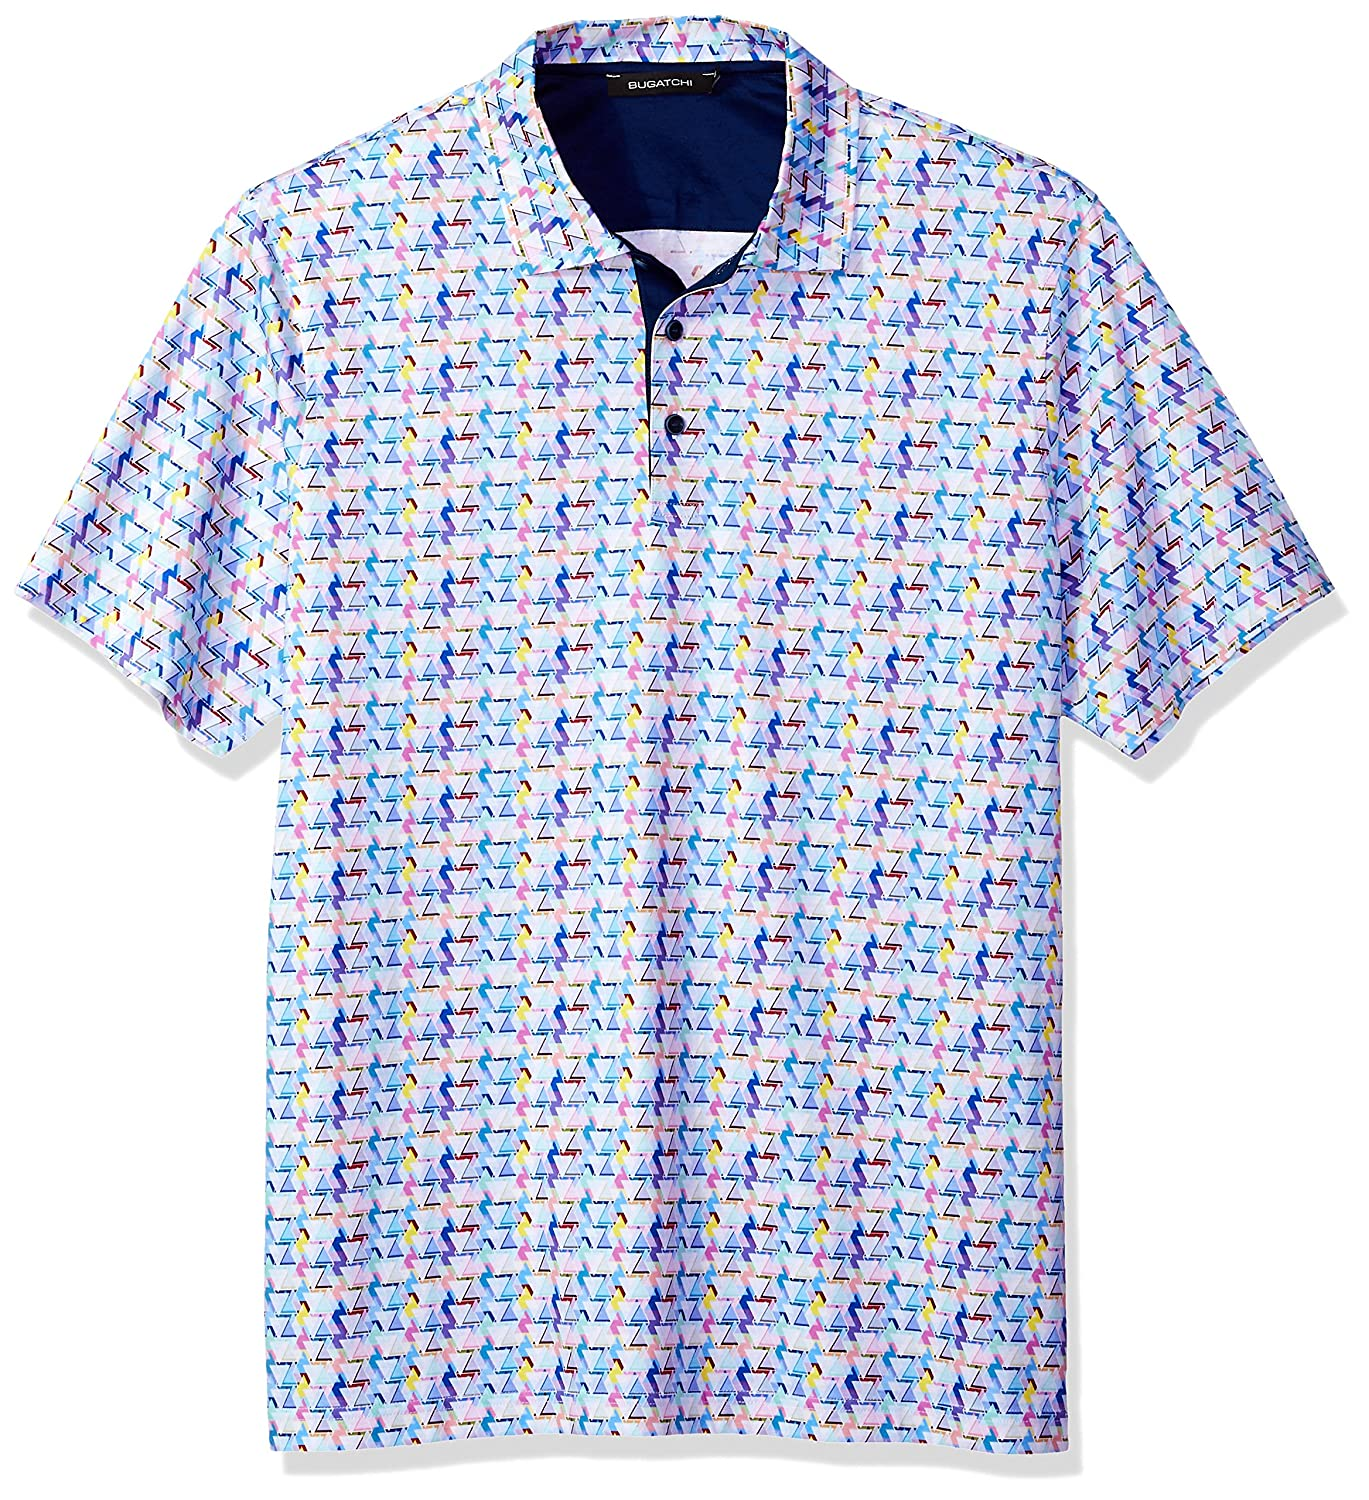 88bb764d5 Bugatchi Men's Modern Trim Fit Candy Triangle Multi Polo Shirt at Amazon  Men's Clothing store: